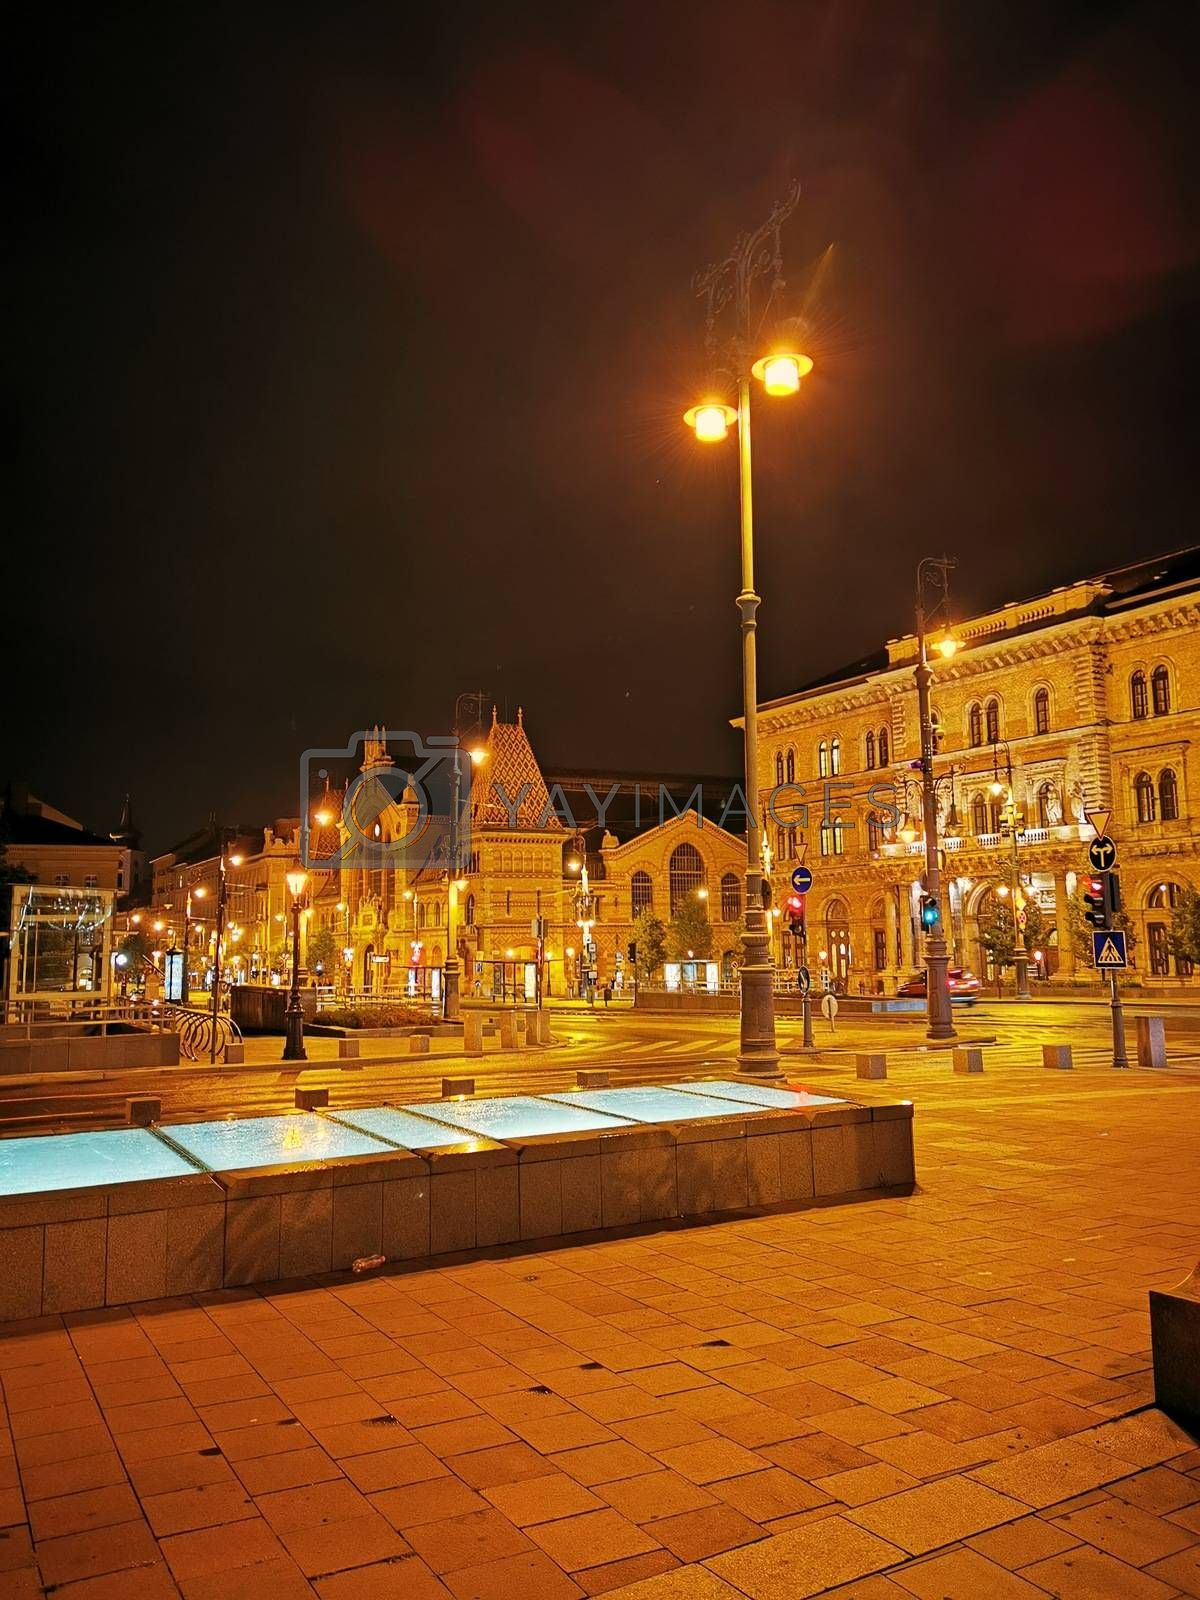 Royalty free image of Evening street view from Budapest city centre by balage941